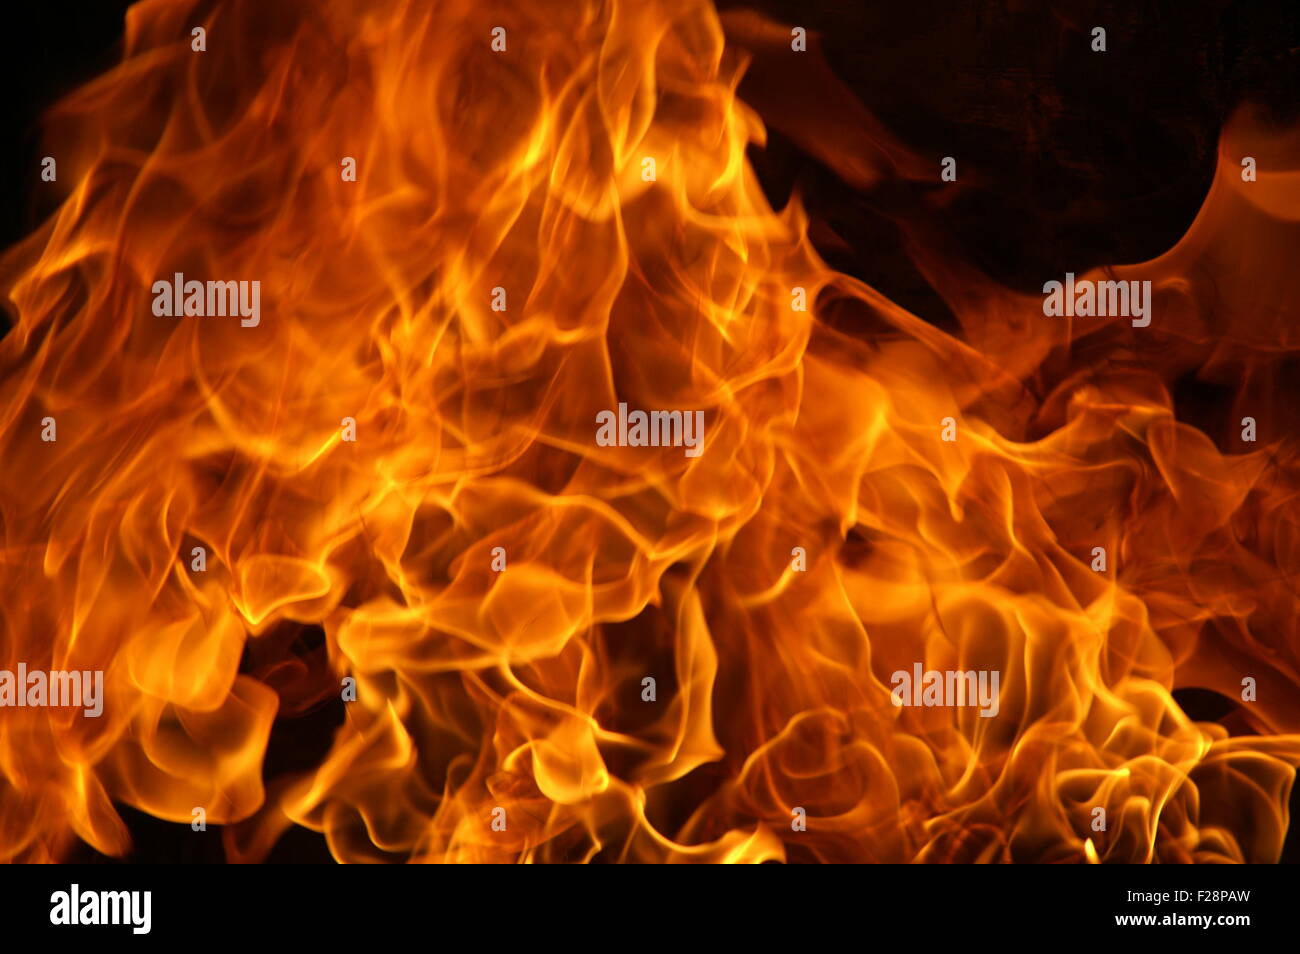 gas explosion and fire - Stock Image